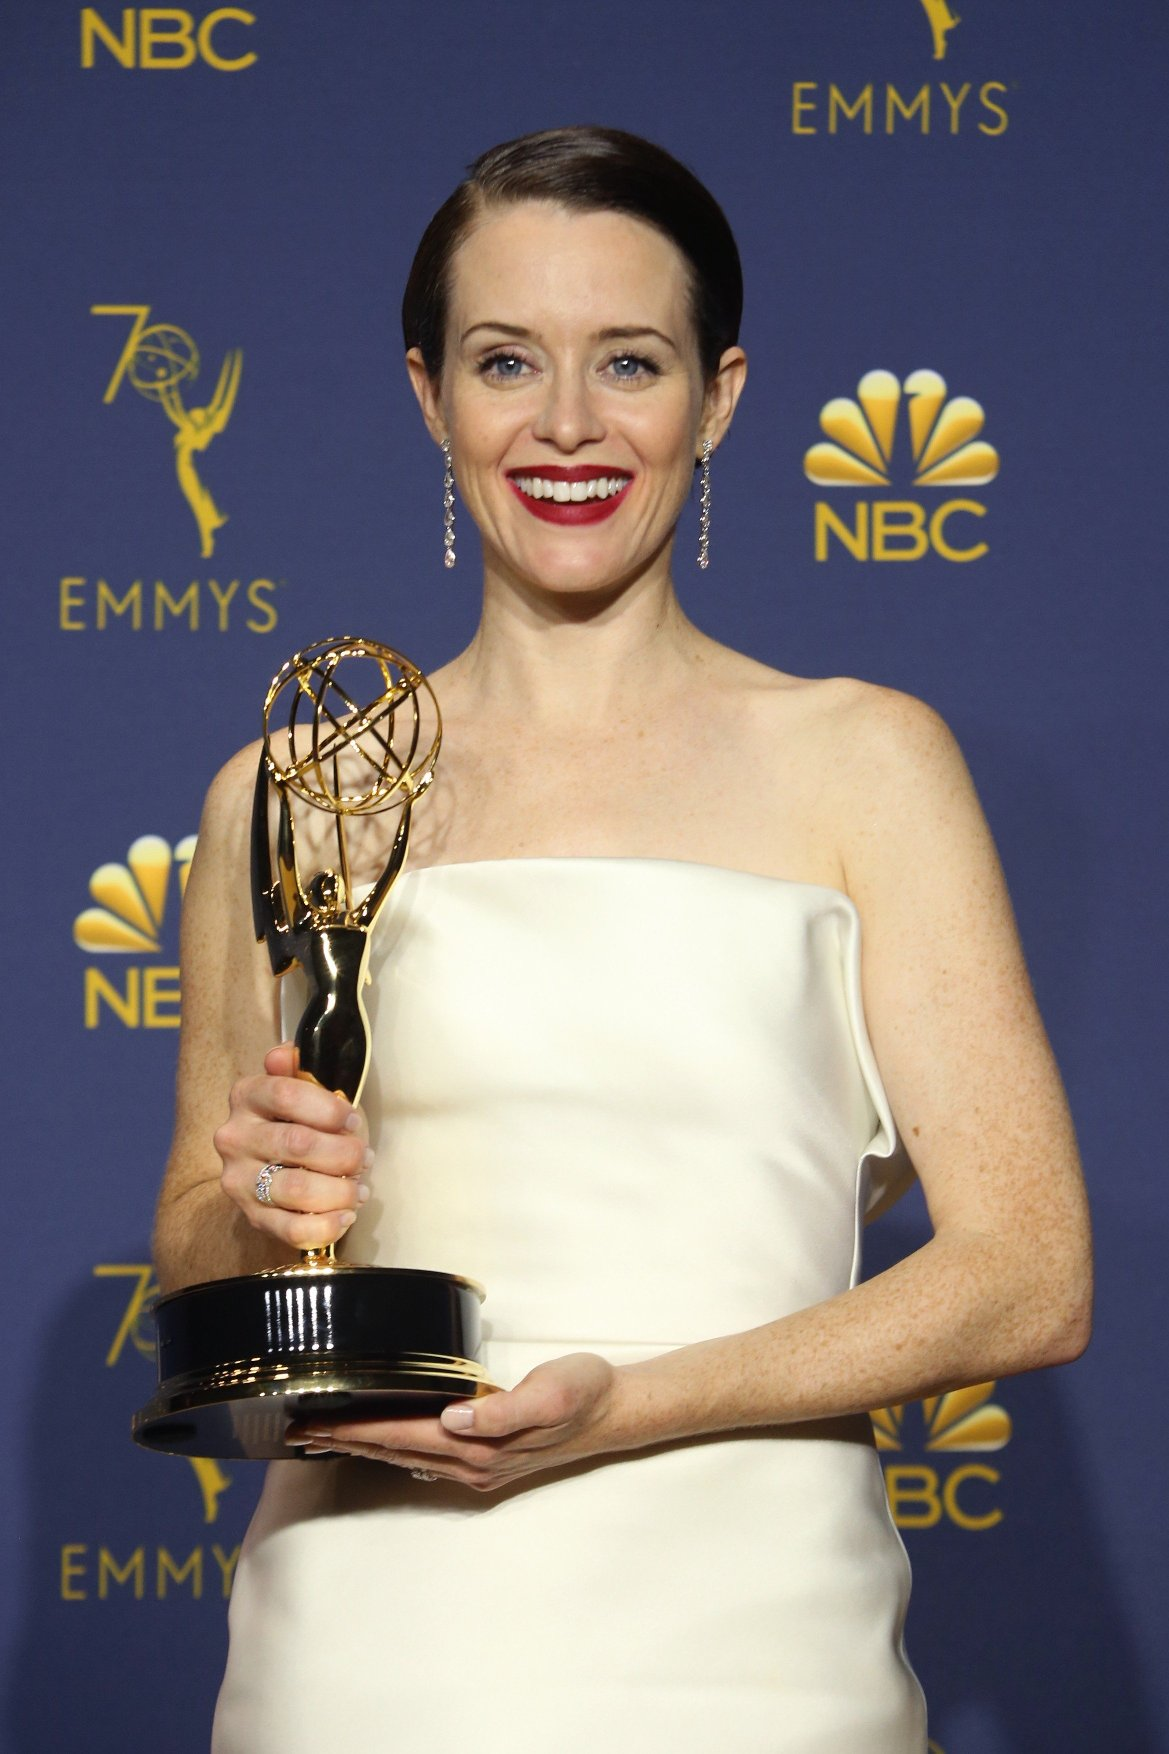 LOS ANGELES, CA - SEPTEMBER 17: Claire Foy in the press room at the 70th Primetime Emmy Awards at the Microsoft Theater in Los Angeles, California on September 17, 2018., Image: 387180018, License: Rights-managed, Restrictions: , Model Release: no, Credit line: Profimedia, Insight Media